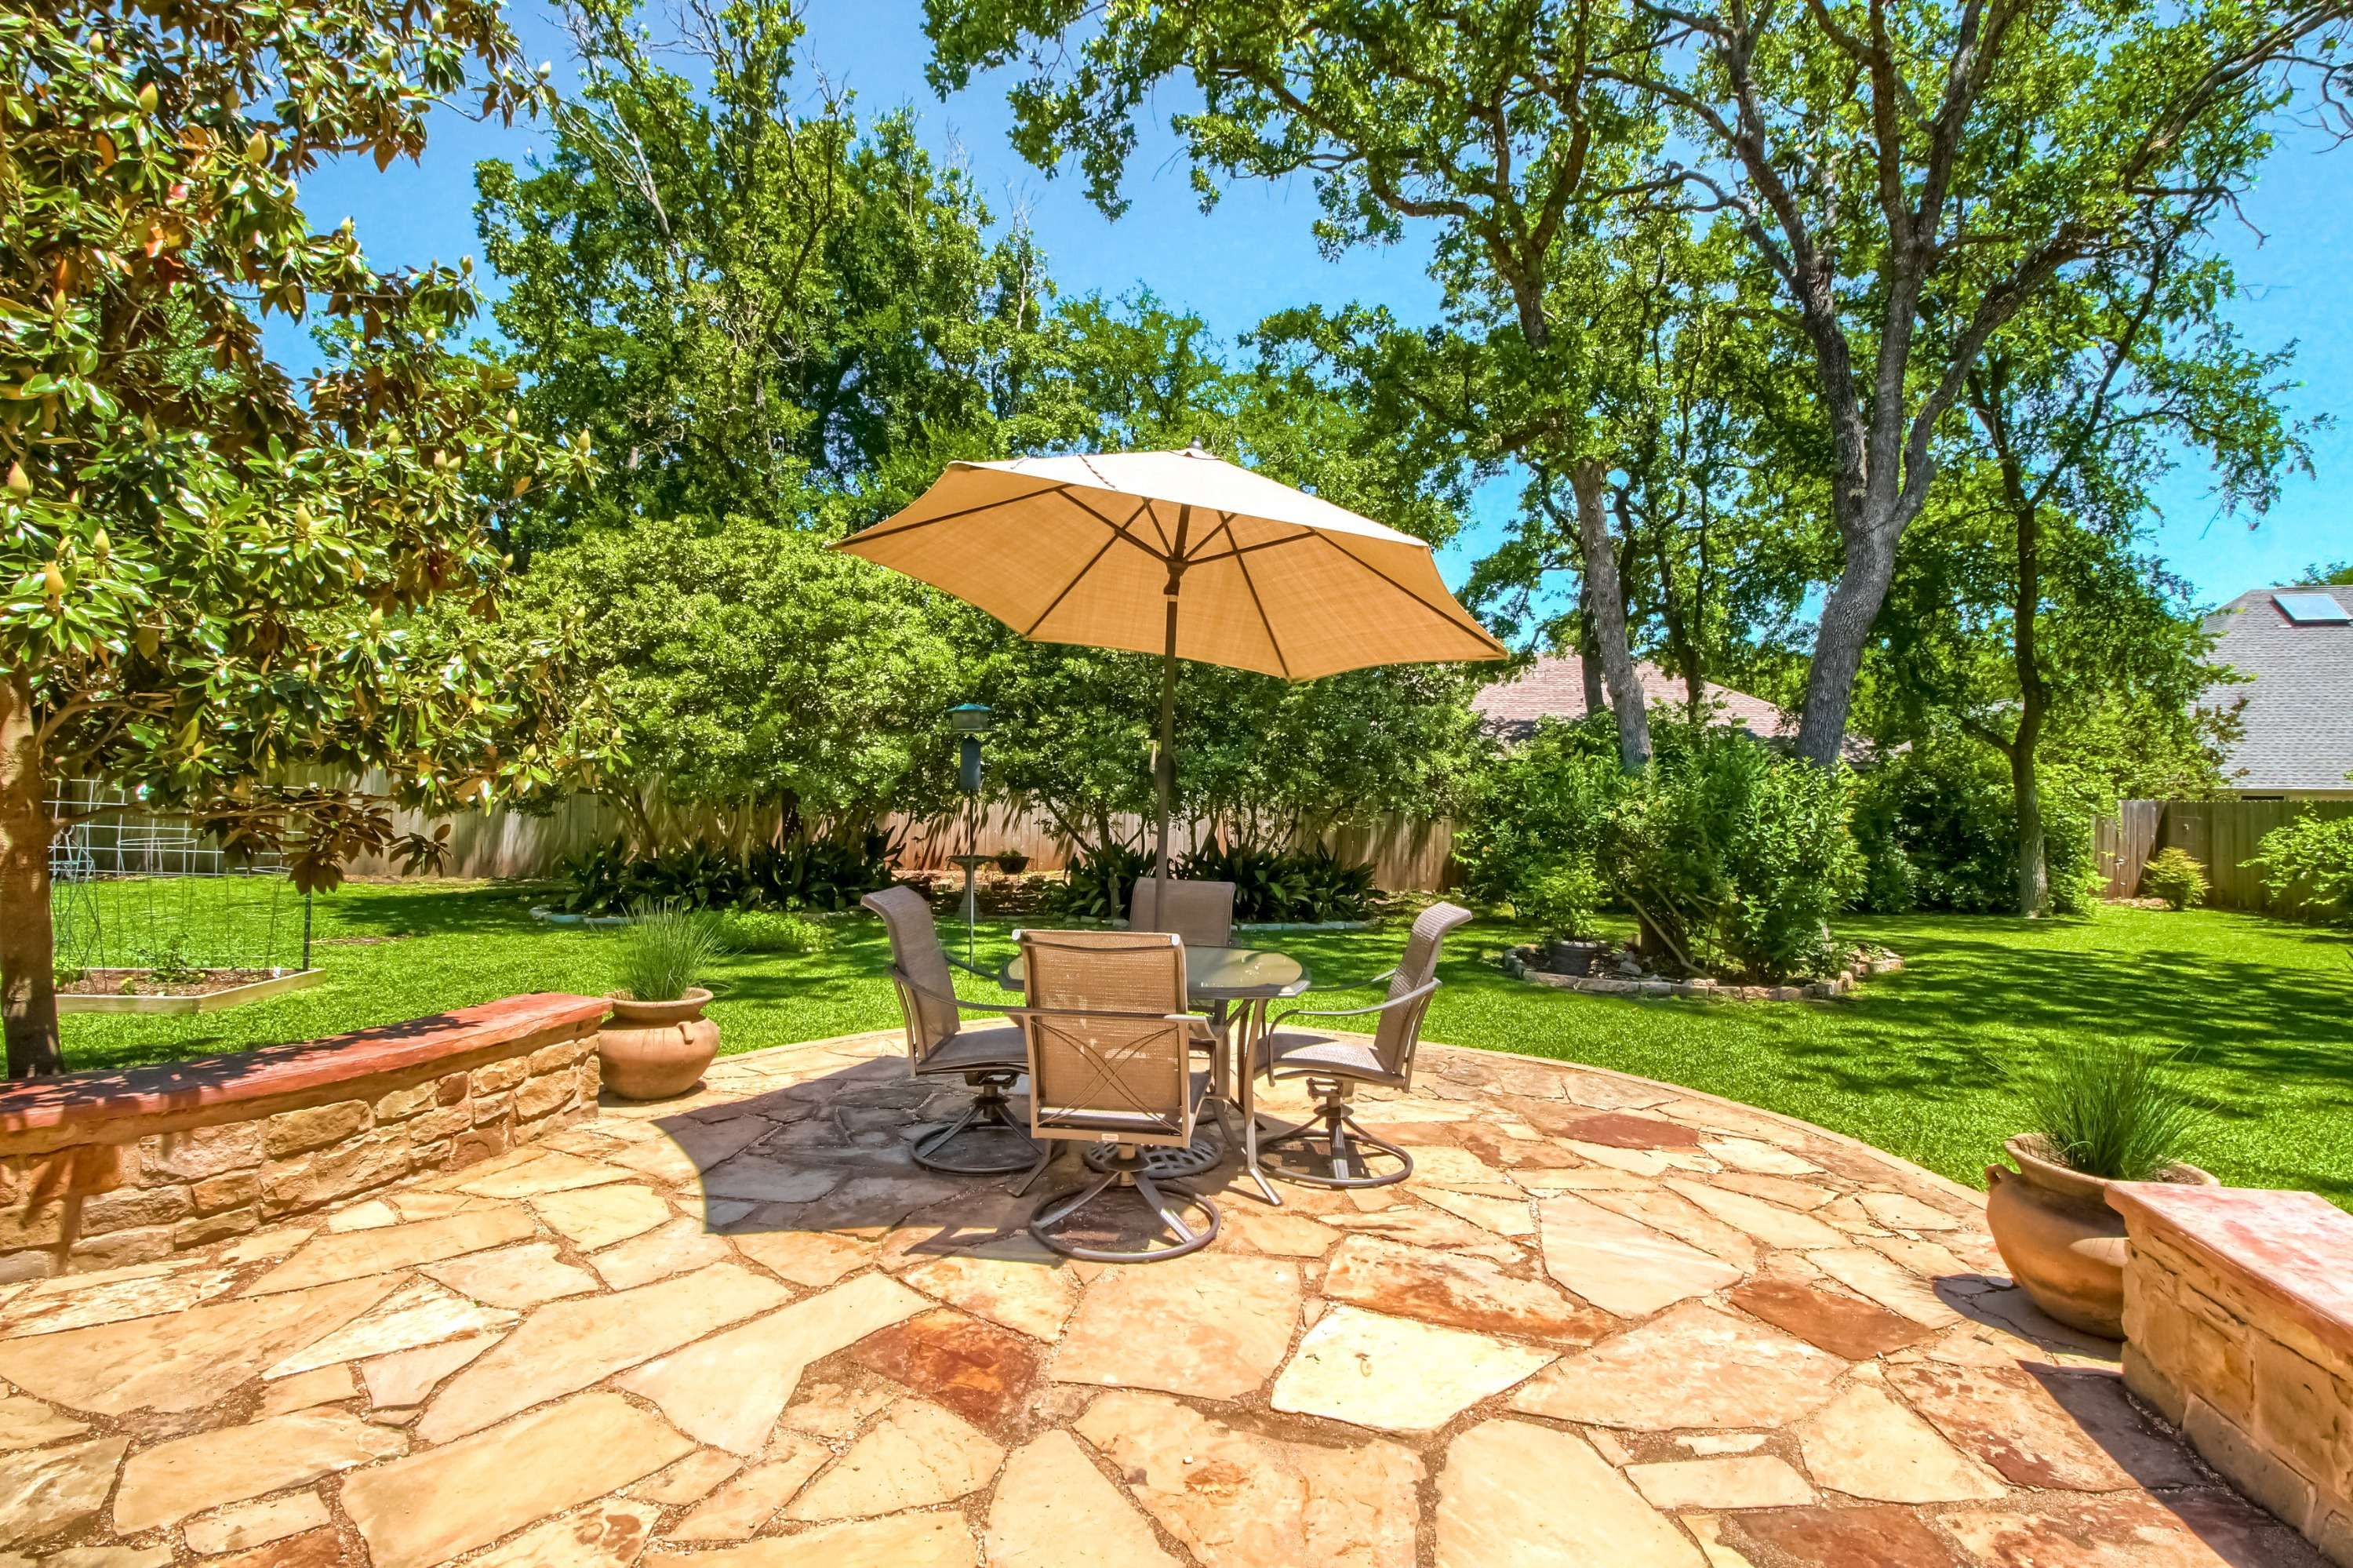 Stuart Sutton listed 30111 Spyglass Circle